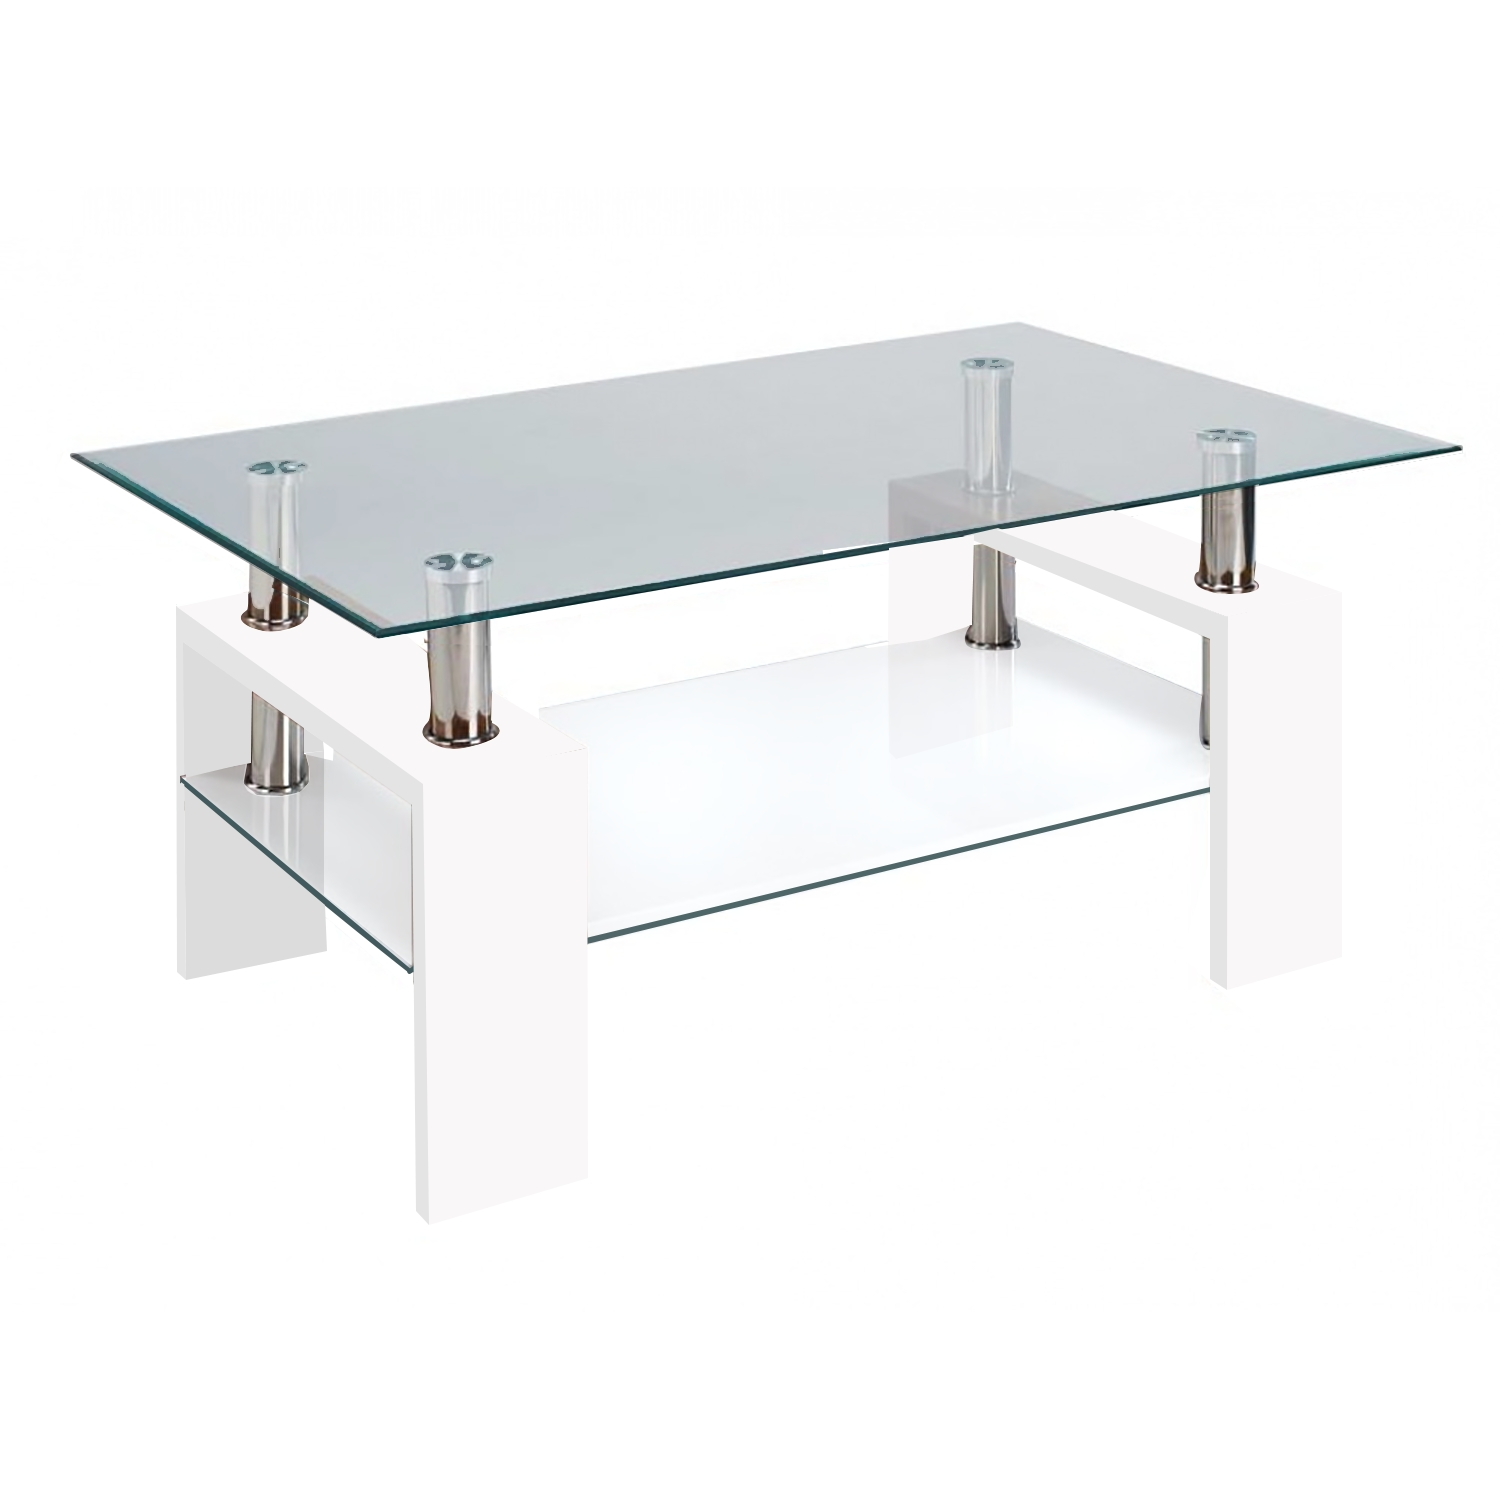 Rectangle Glass Coffee Table With Storage, Small Top Decor With Regard To Most Current Rectangle Glass Coffee Table (View 18 of 20)